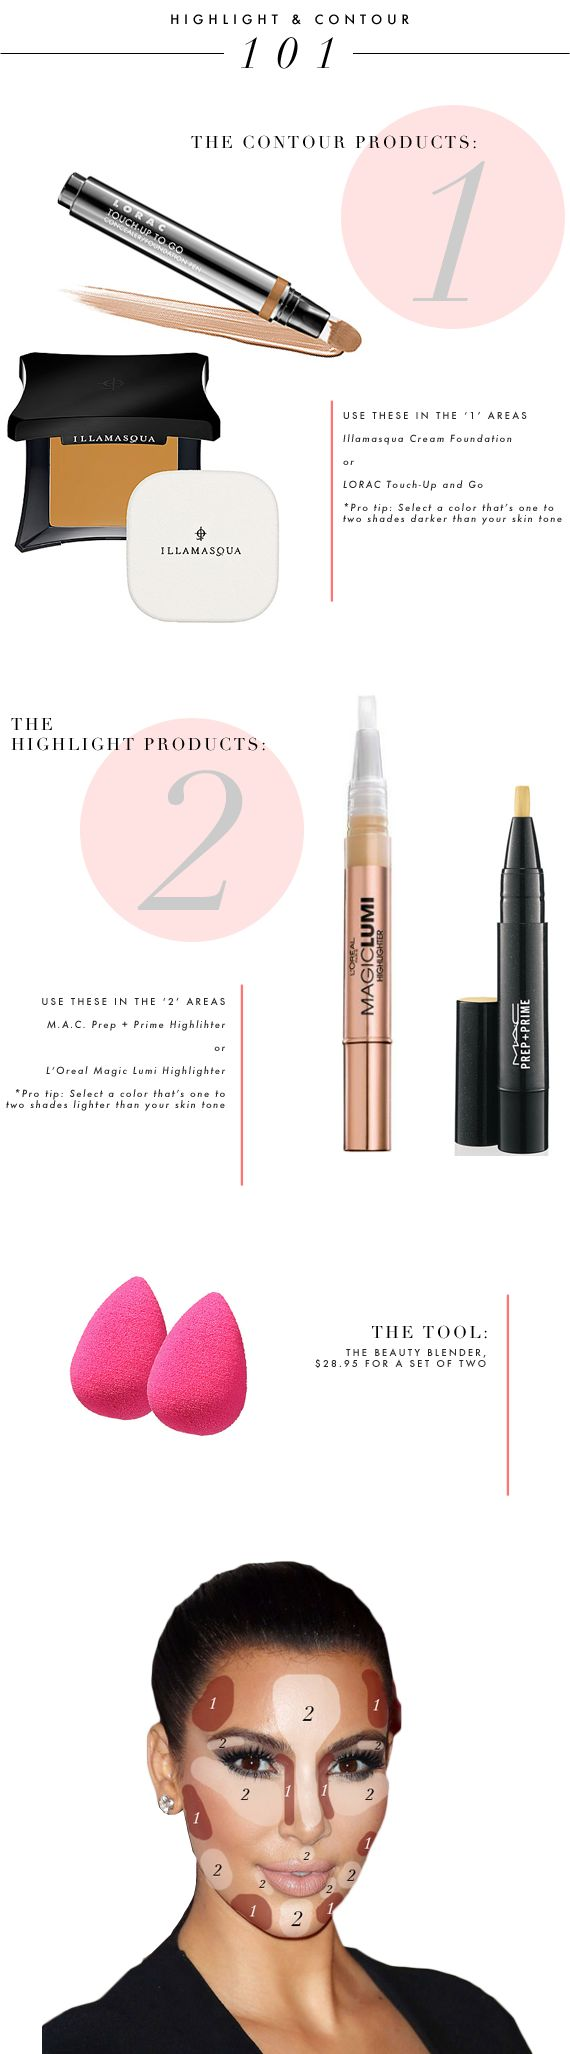 makeup guide how to highlight and contour your face a step by step guide